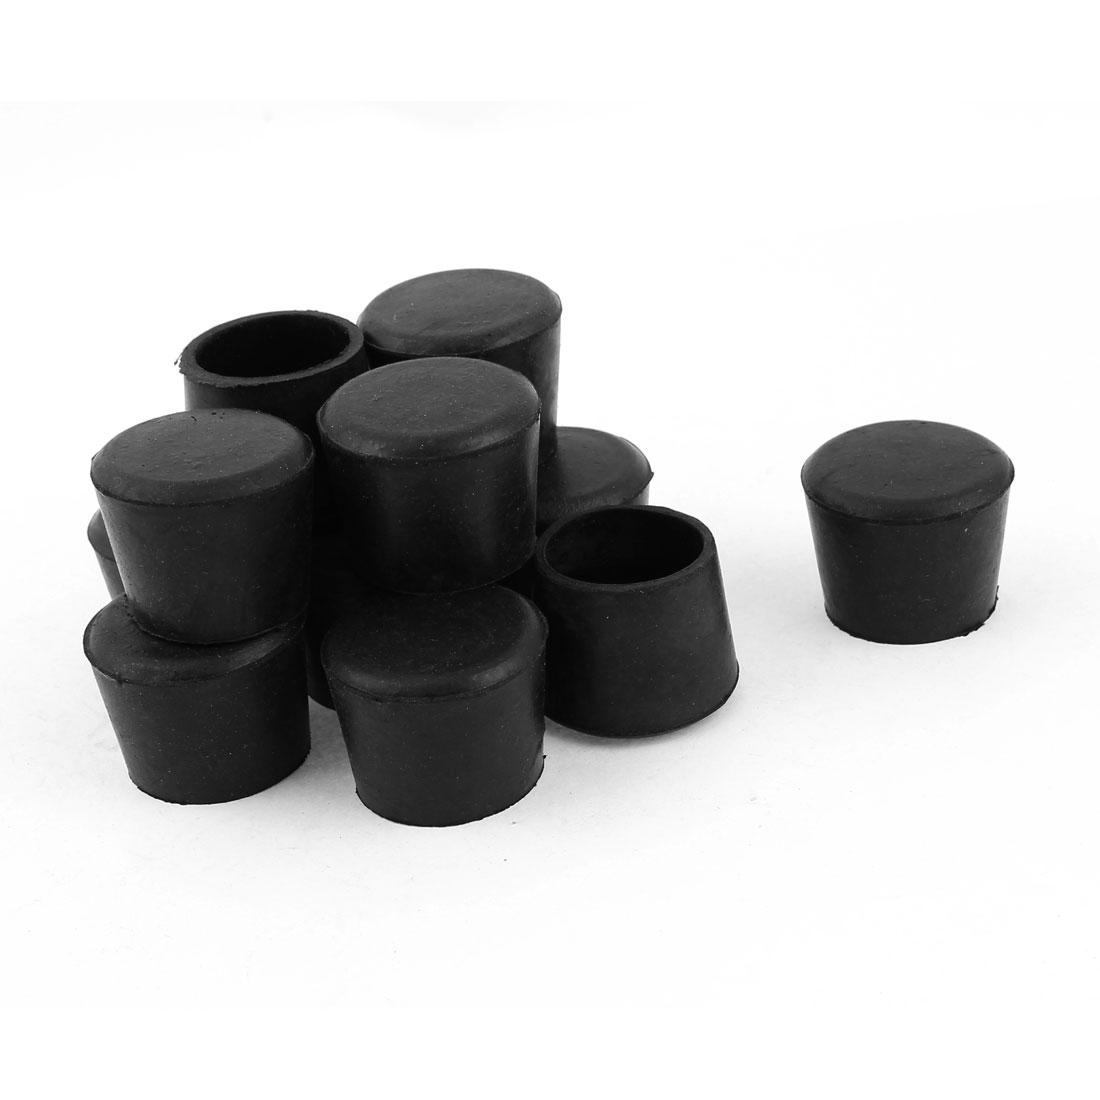 2.5cm Inner Dia Round Rubber Furniture Leg Foot Cover Holder Protector 12 Pcs